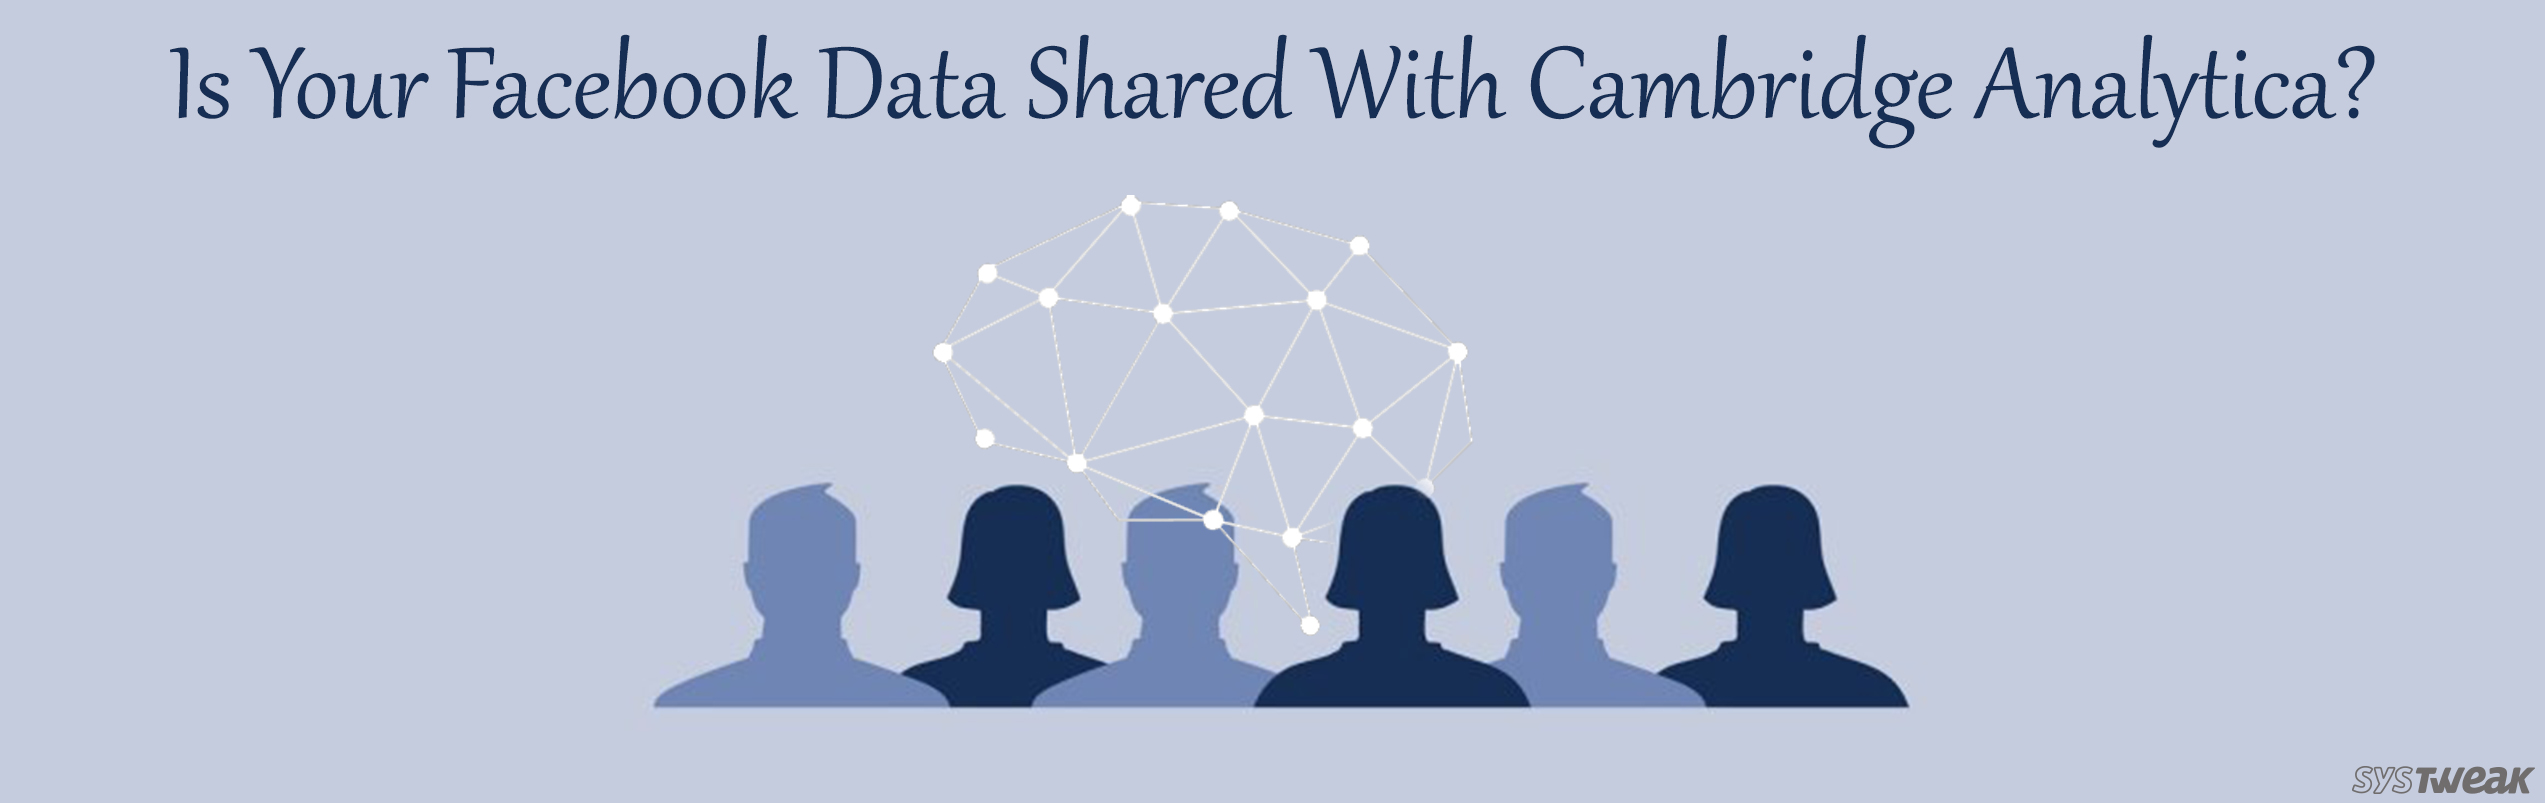 Now Check If Your Facebook Data Has Been Shared With Cambridge Analytica